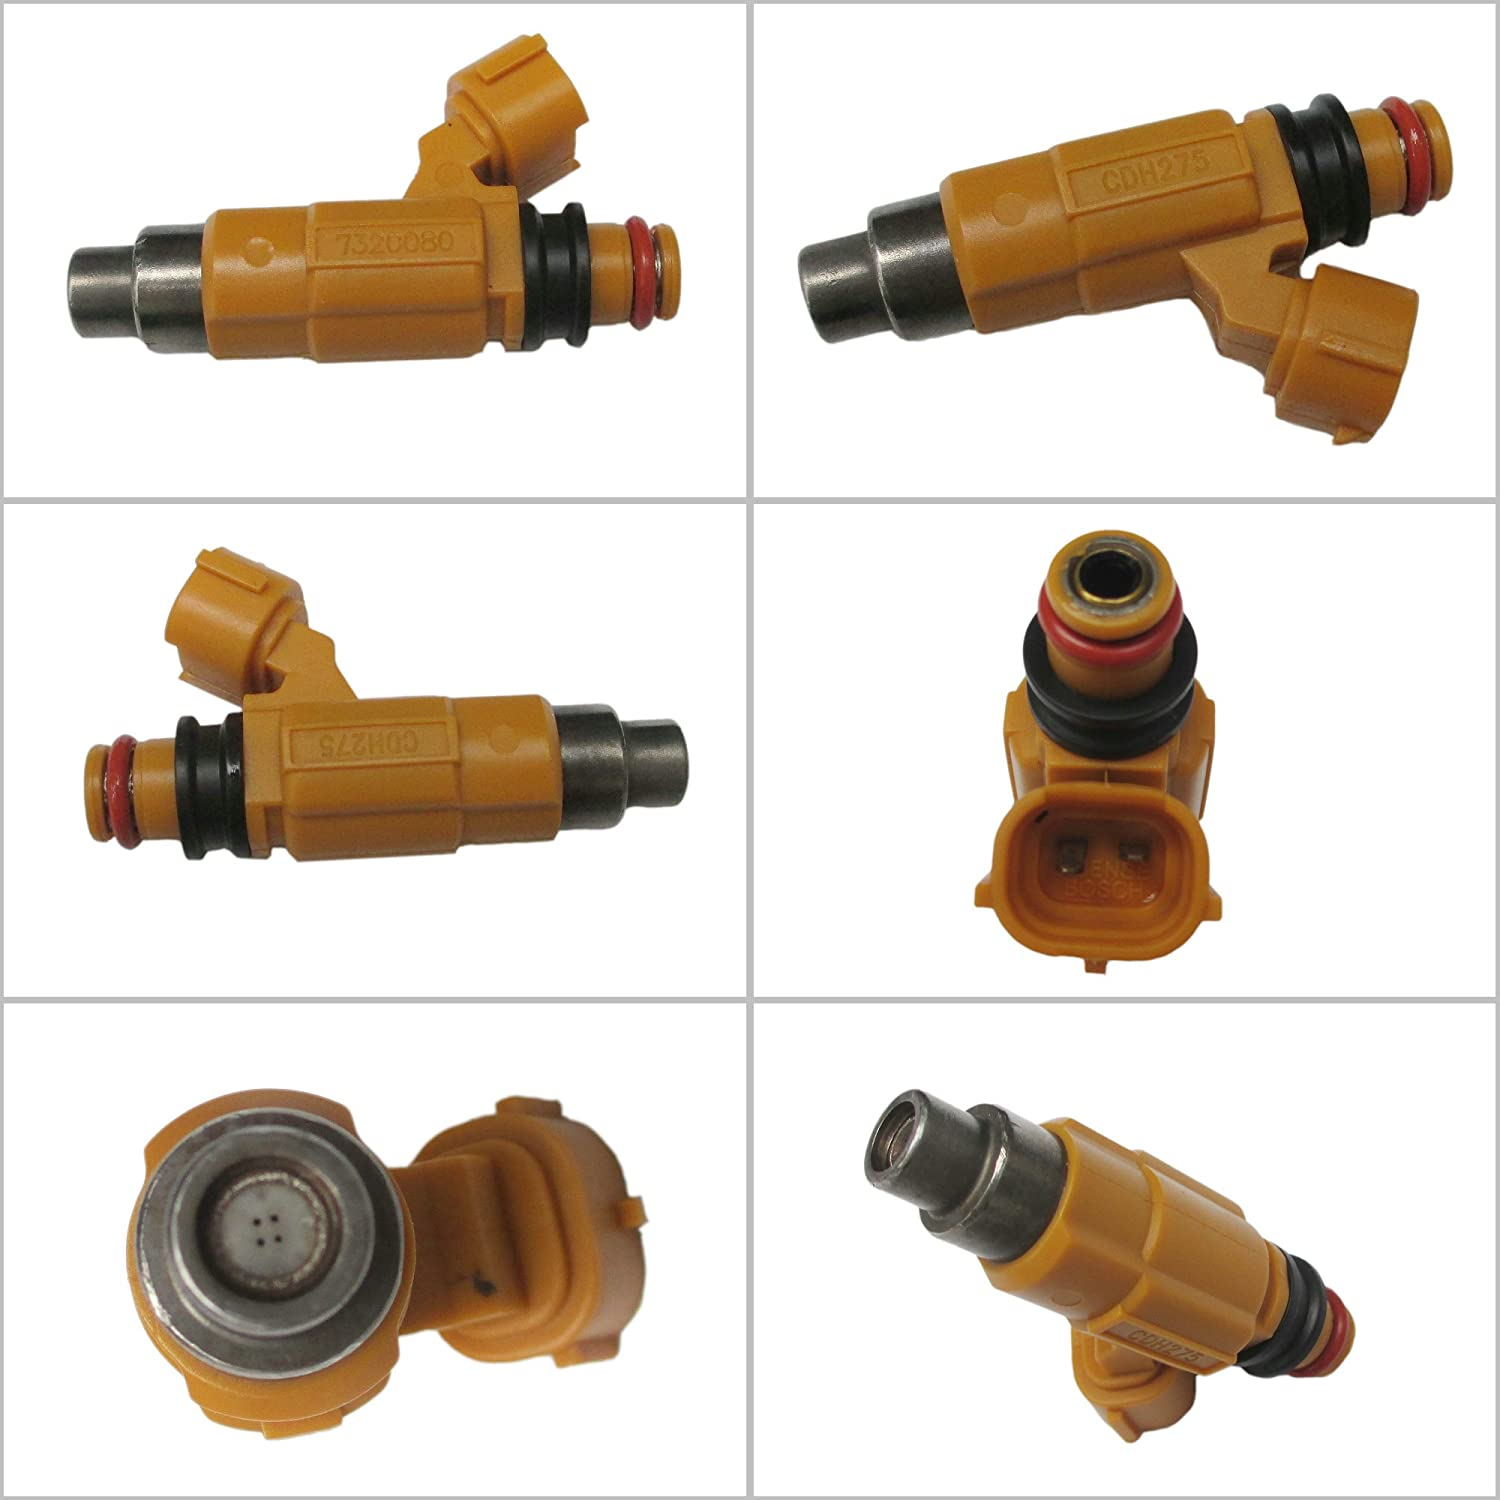 4 x Fuel Injectors for Marine Yamaha F150 Outboard Four Stroke 63P1376100 CDH275 150HP